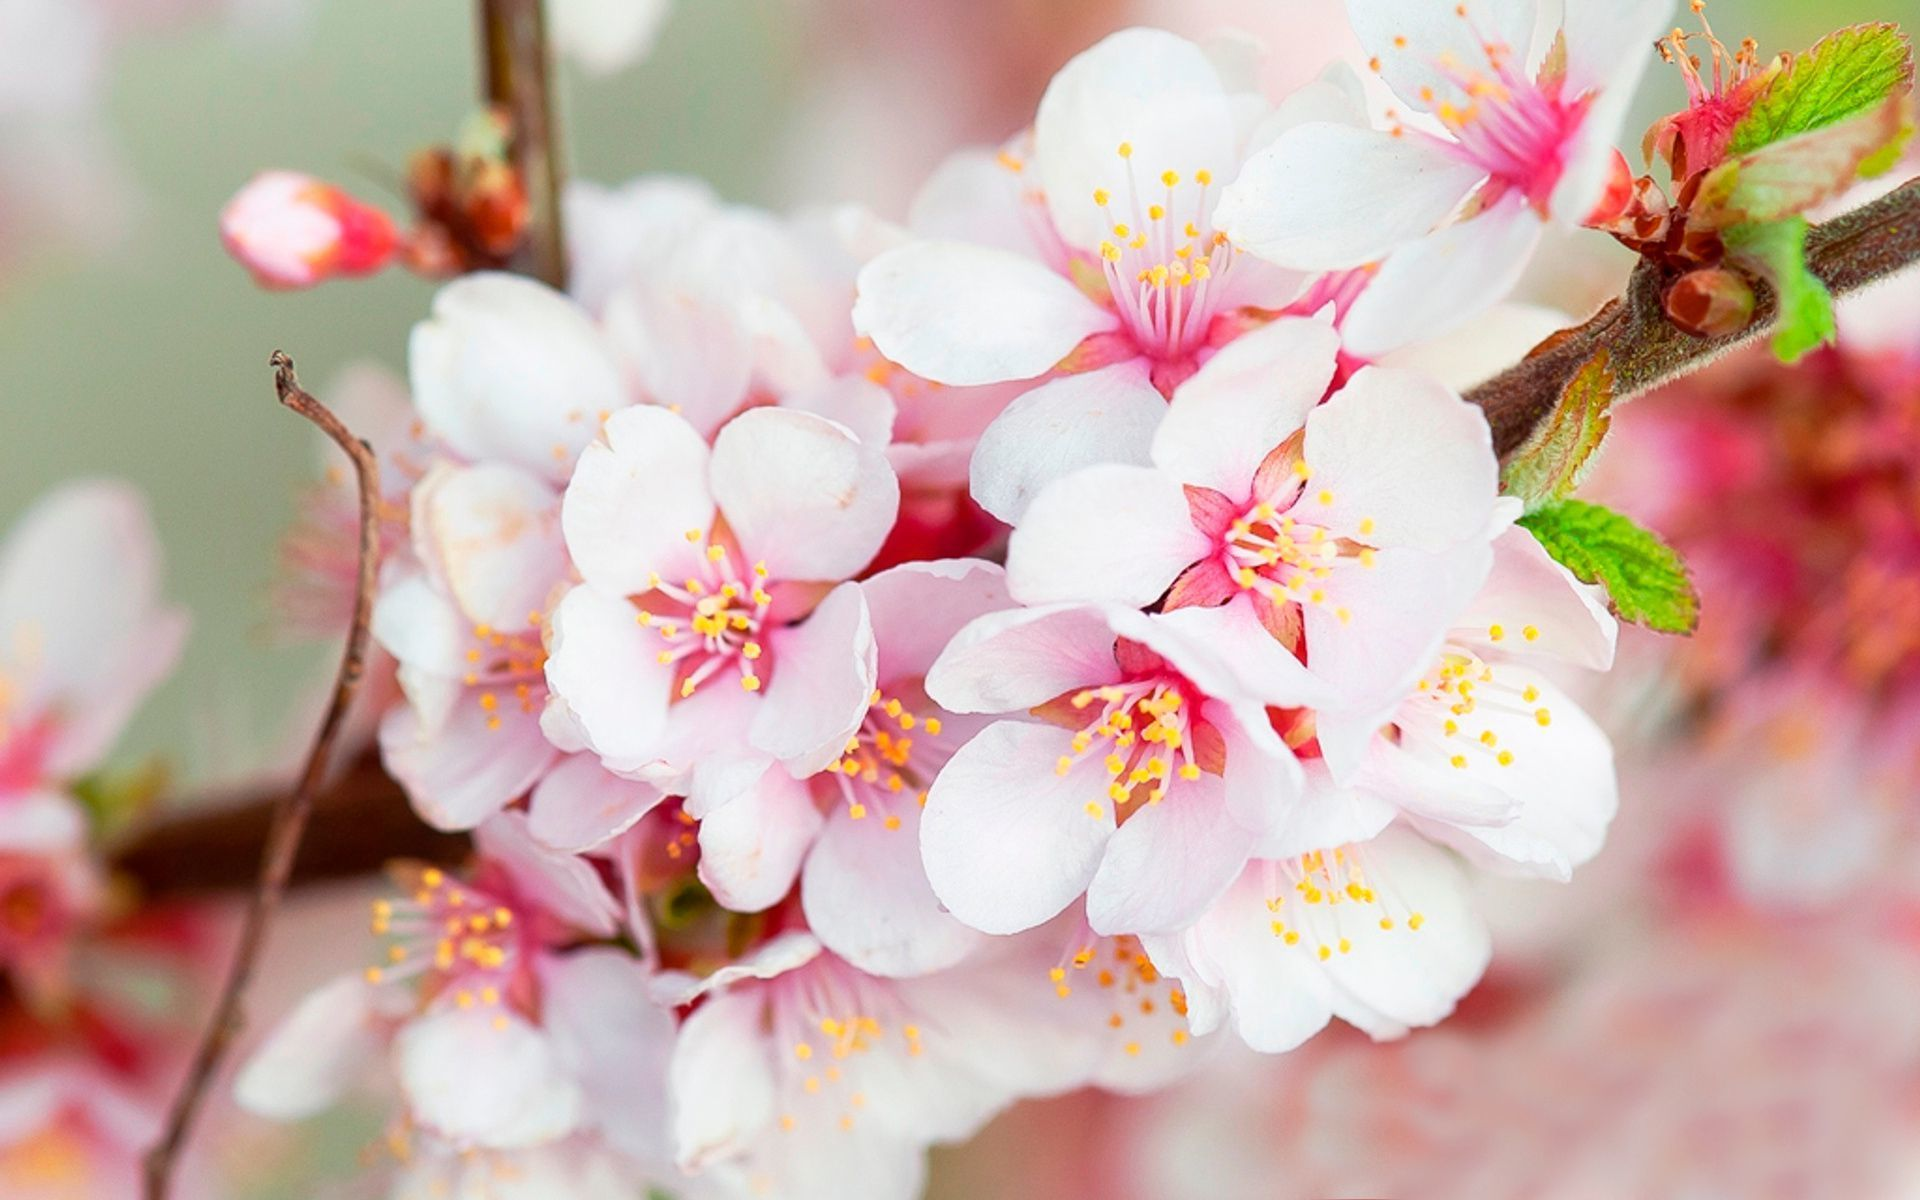 Wonderful cherry blossom wallpapers.